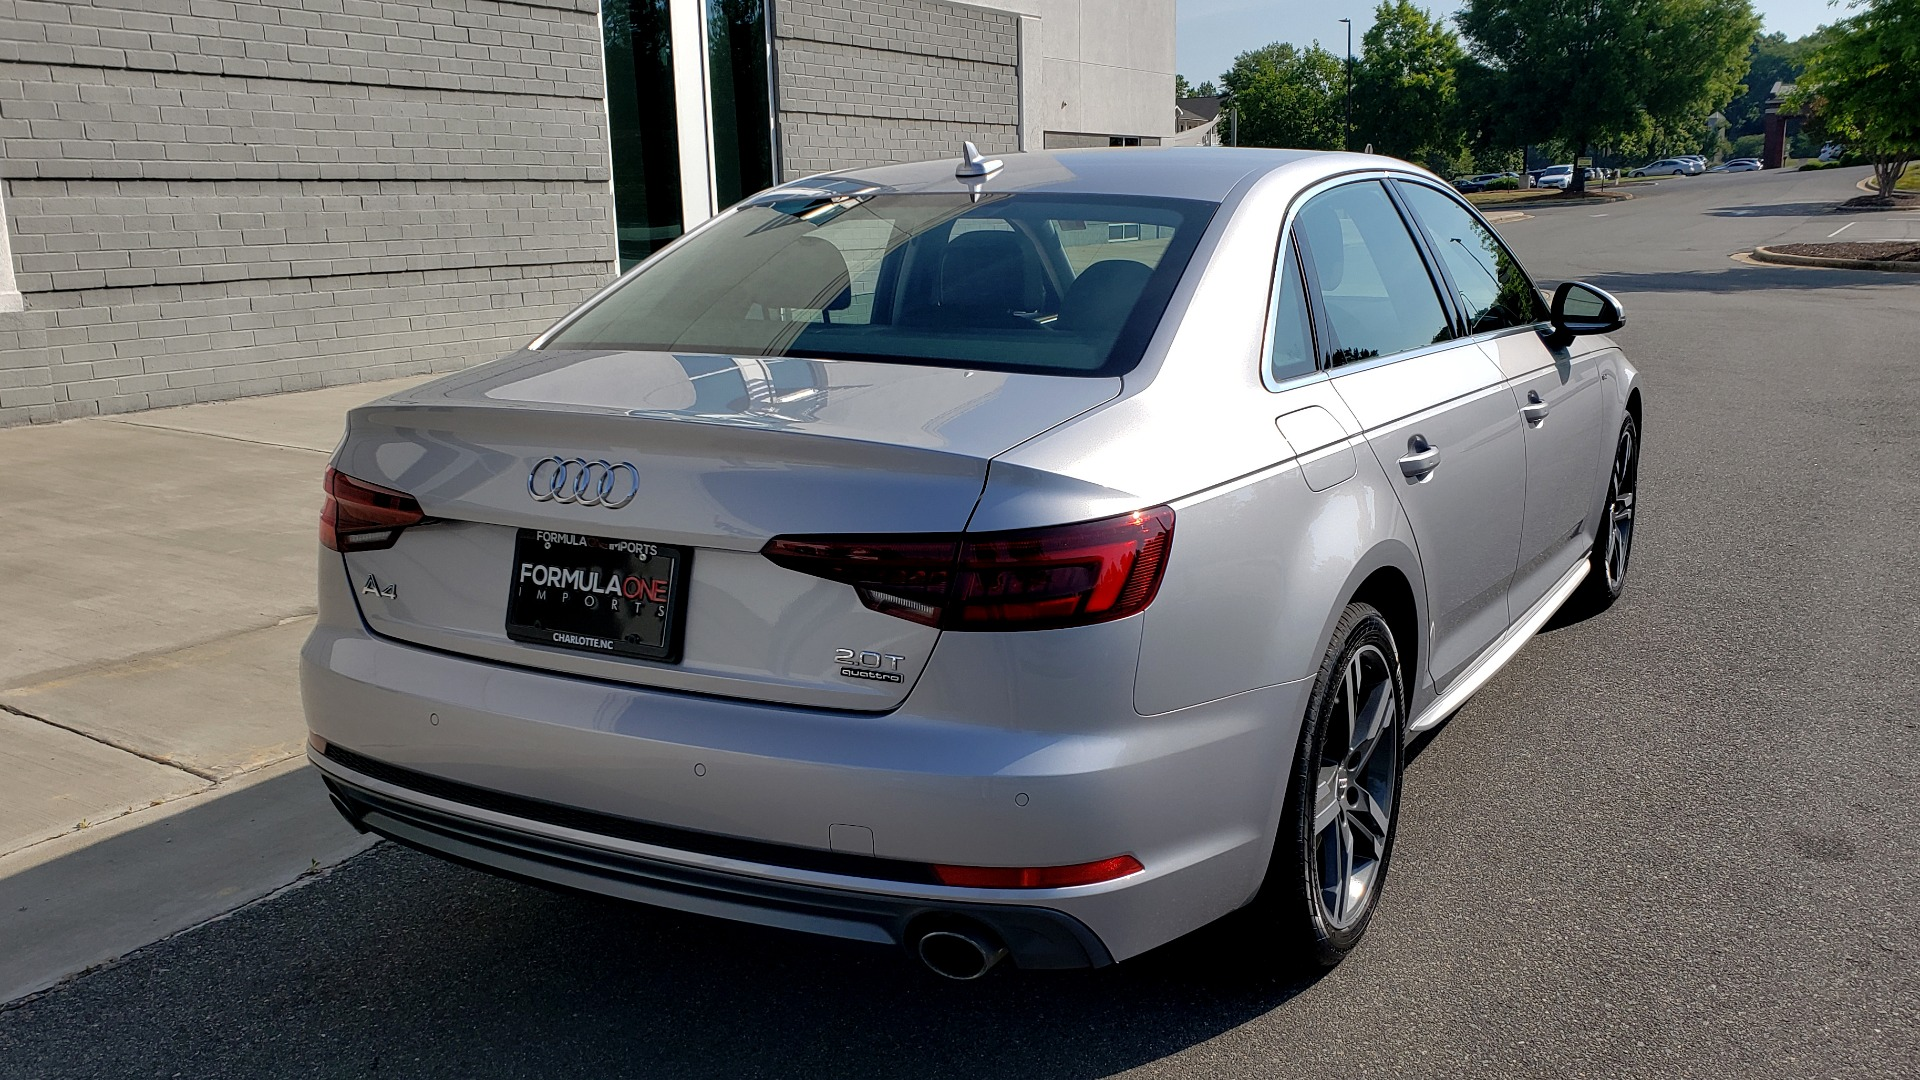 Used 2018 Audi A4 PREMIUM PLUS 2.0T / NAV / SUNROOF / B&O SND / CLD WTHR / REARVIEW for sale $29,395 at Formula Imports in Charlotte NC 28227 3